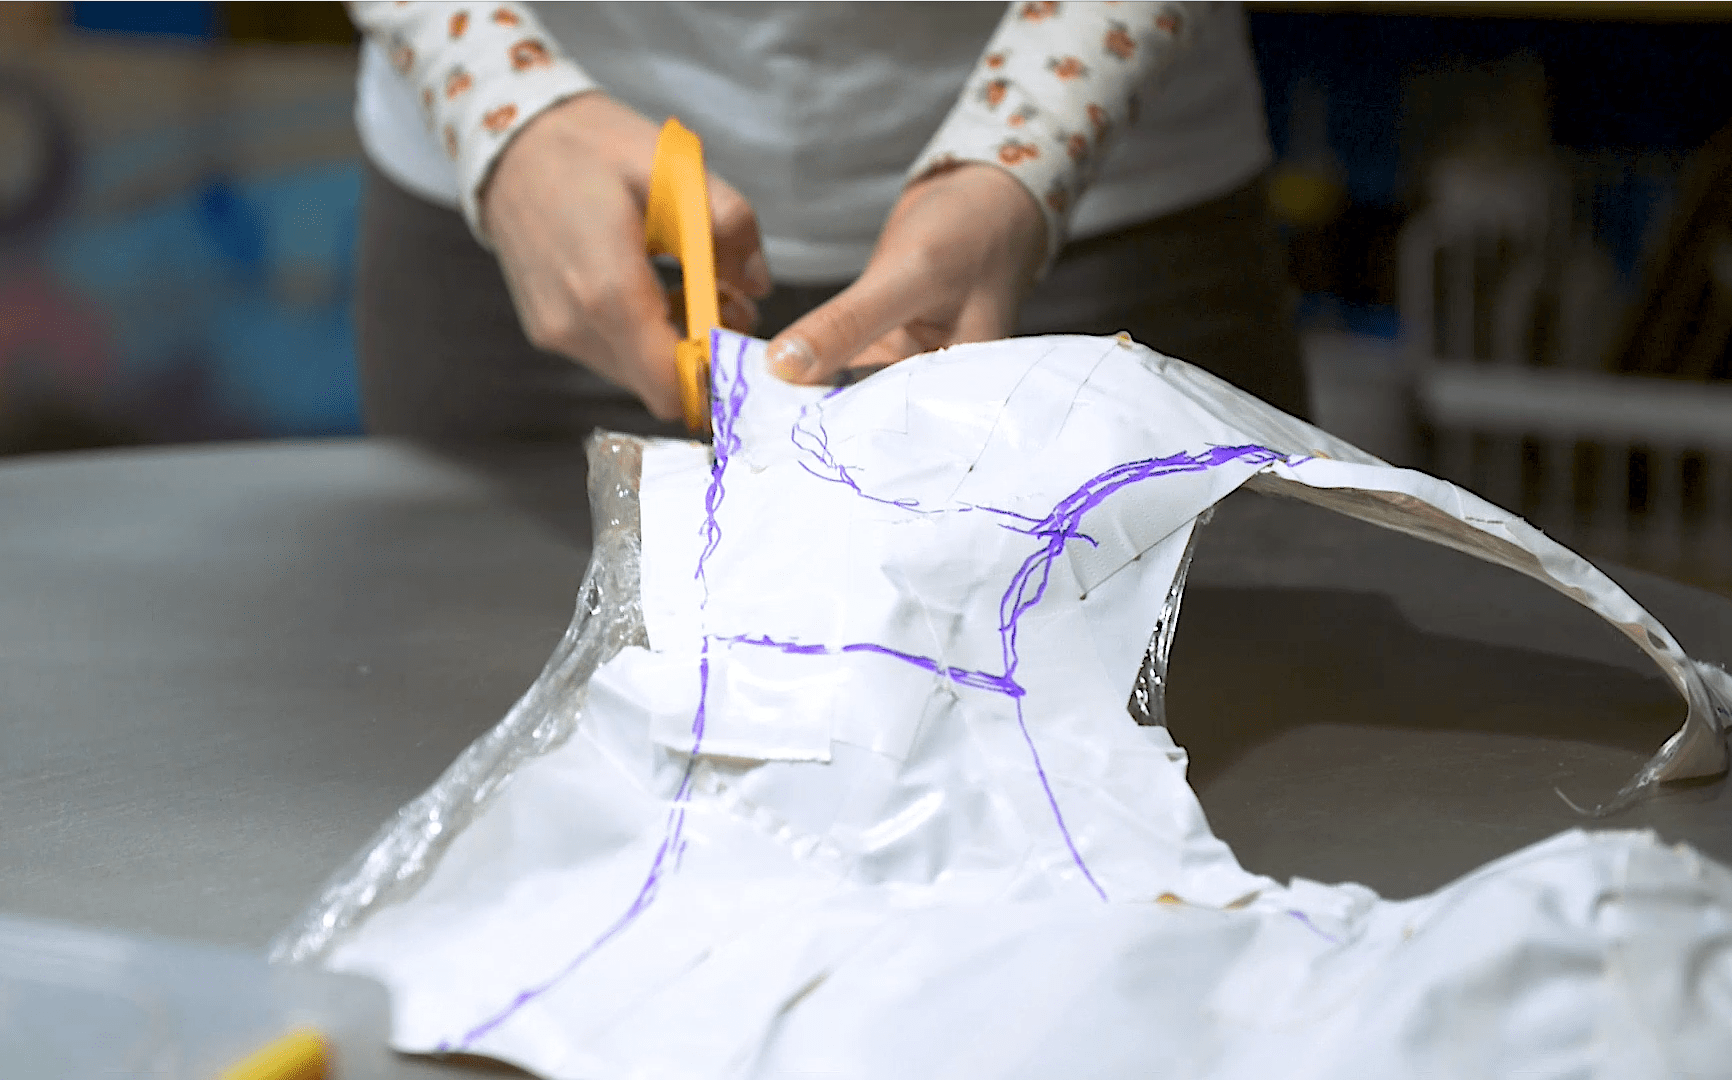 Cutting apart duct tape and plastic wrap cosplay armor pattern